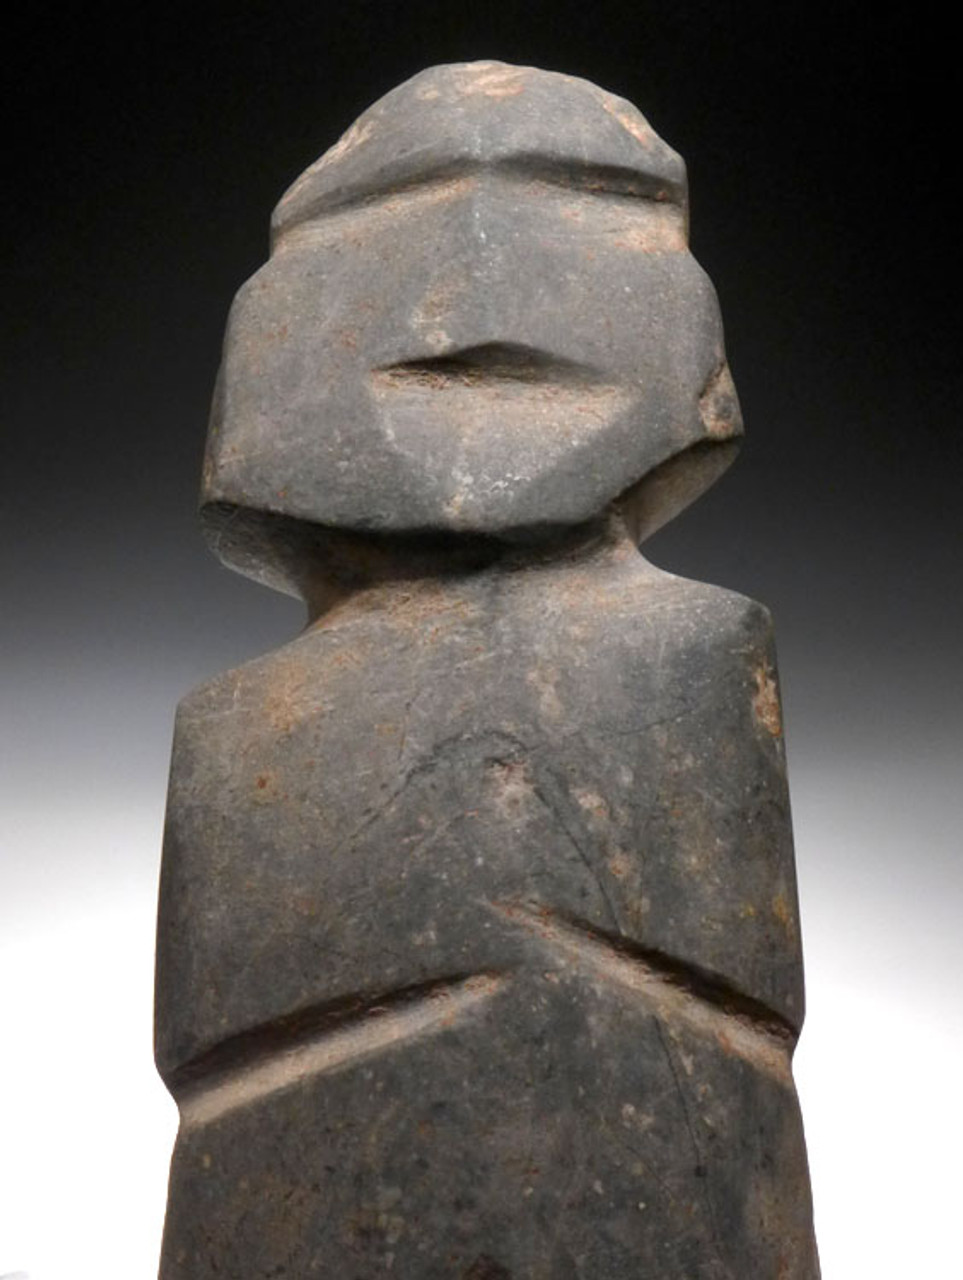 PRE-COLUMBIAN ANCIENT ALIEN STONE FIGURE